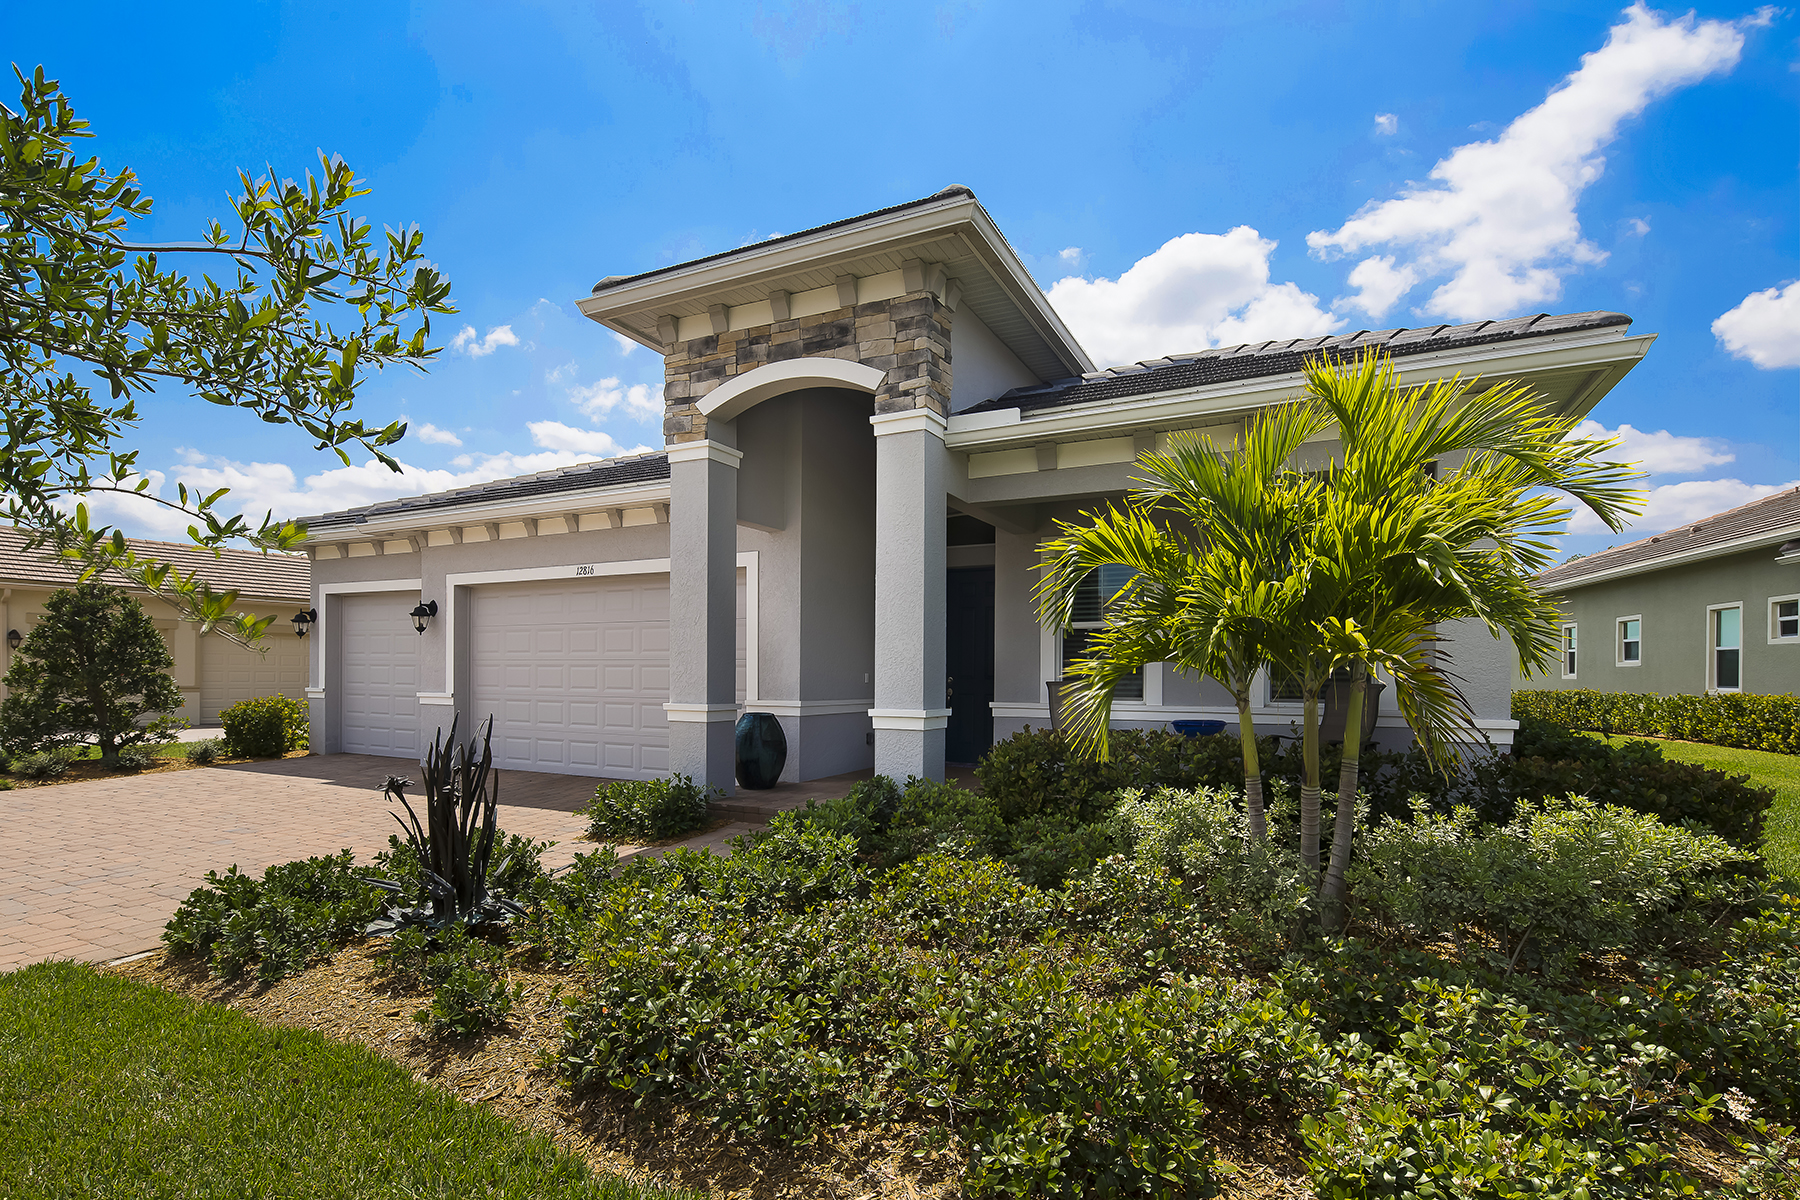 Casa Unifamiliar por un Venta en VERANDAH - FAIRWAY COVE 12816 Fairway Cove Ct Fort Myers, Florida, 33905 Estados Unidos